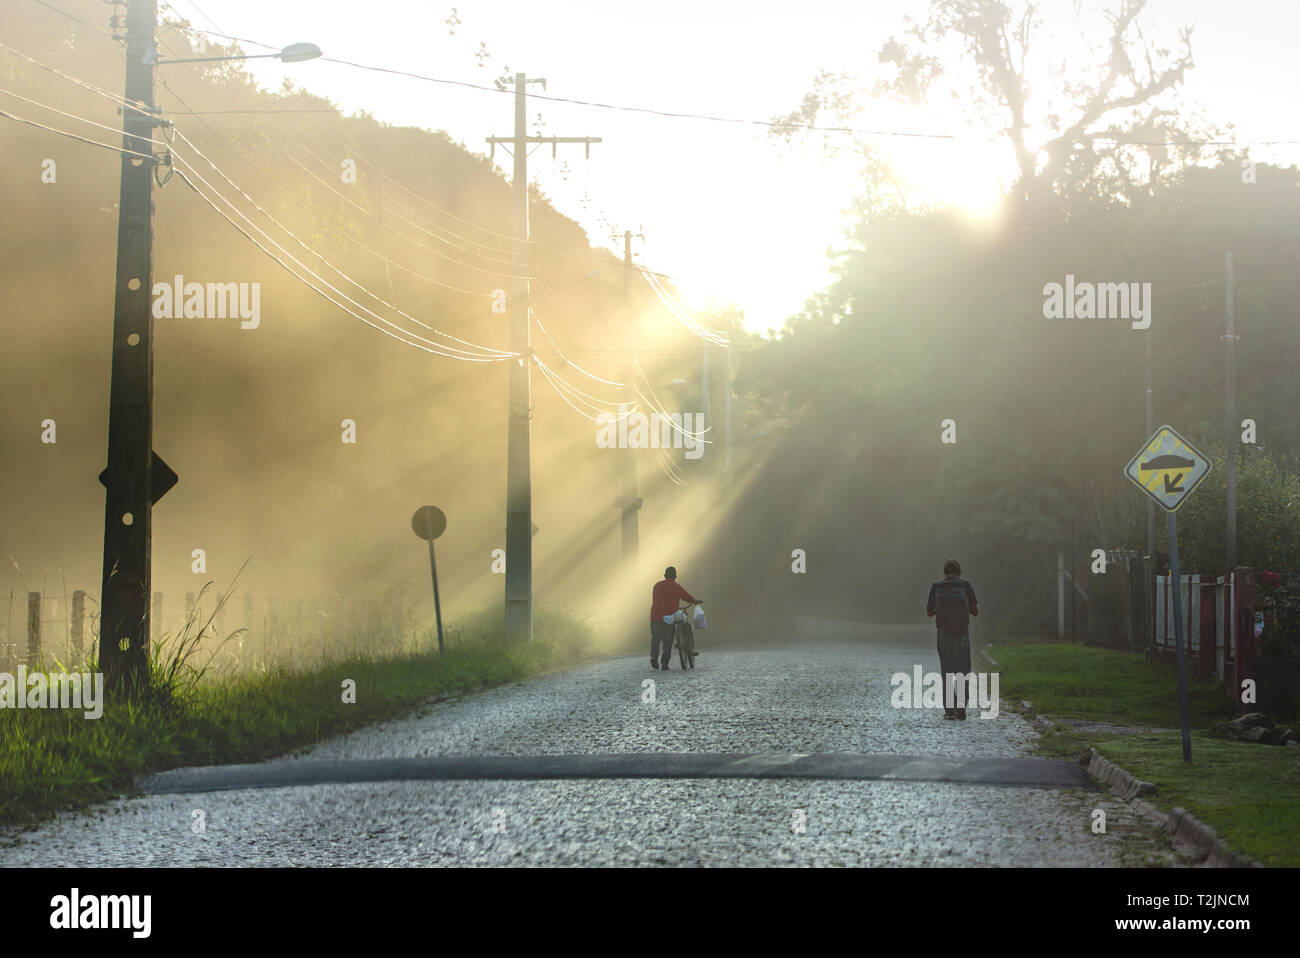 São Luiz Do Puruna, Parana, Brazil - March 30, 2019: Sunset at 17:27:36 in a small and sparsely populated city of Parana. - Stock Image